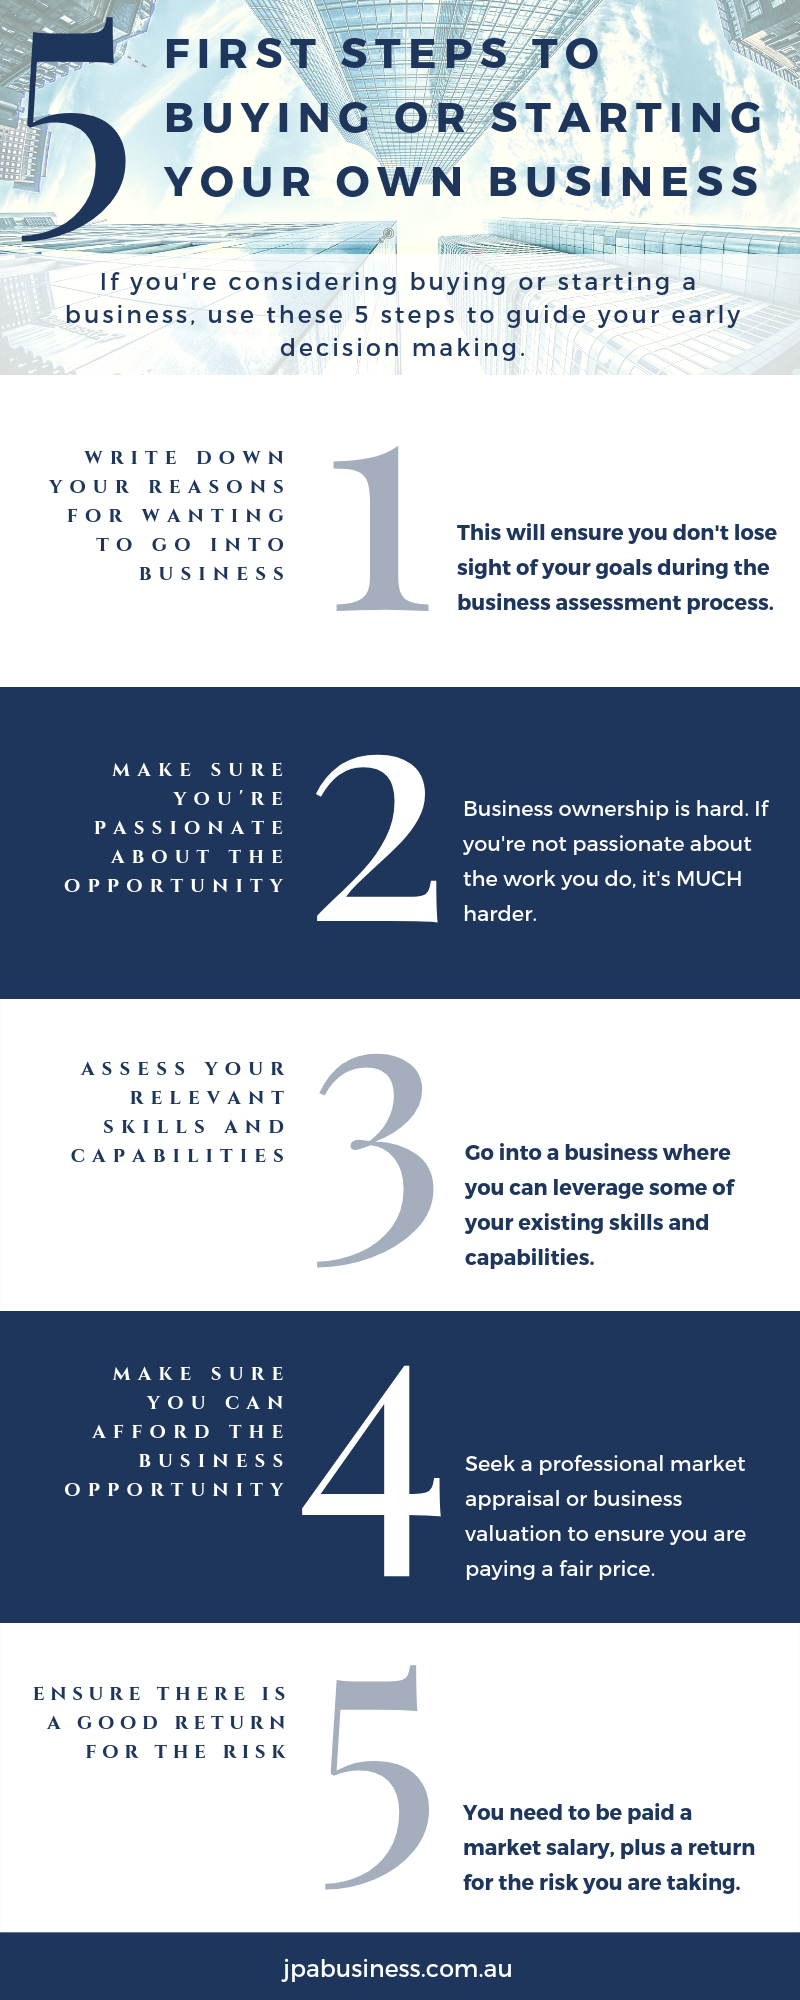 5 first steps to buying or starting your own business (1)